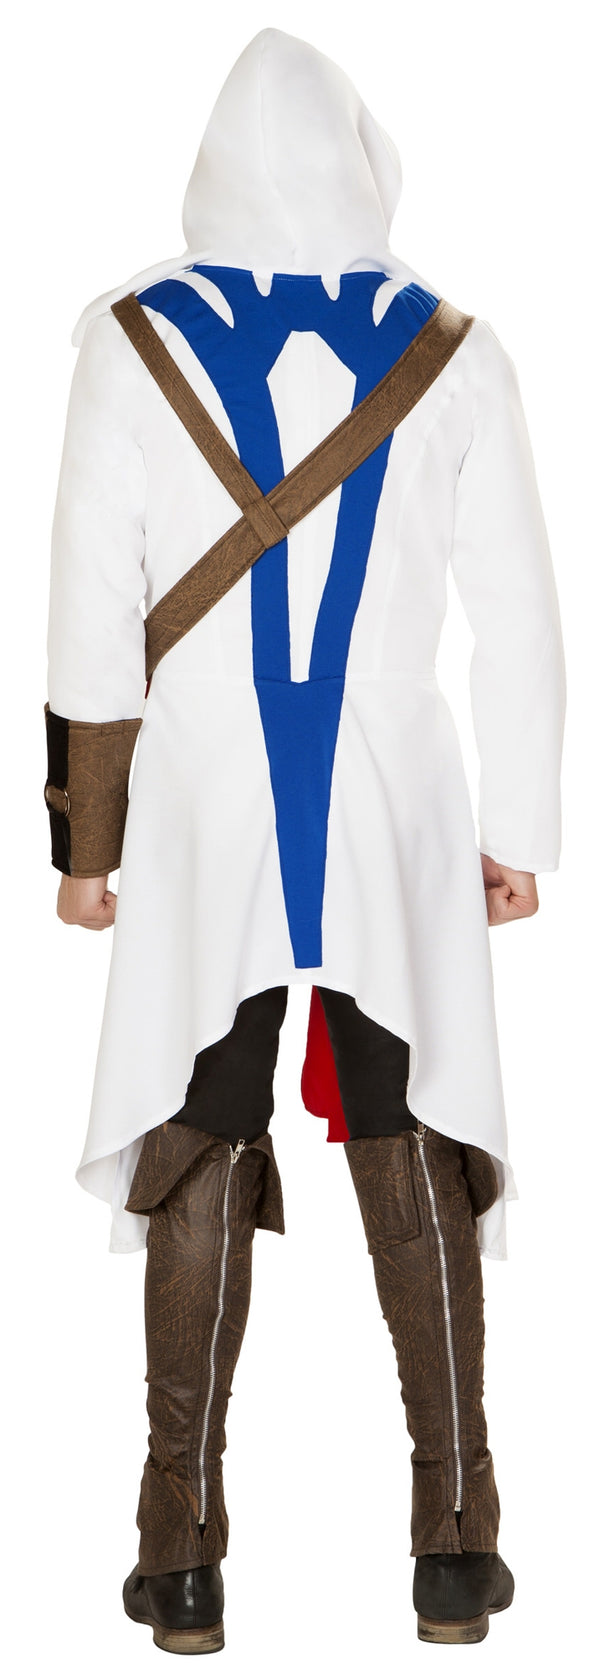 RM-4844 The Assassins Warrior Costume